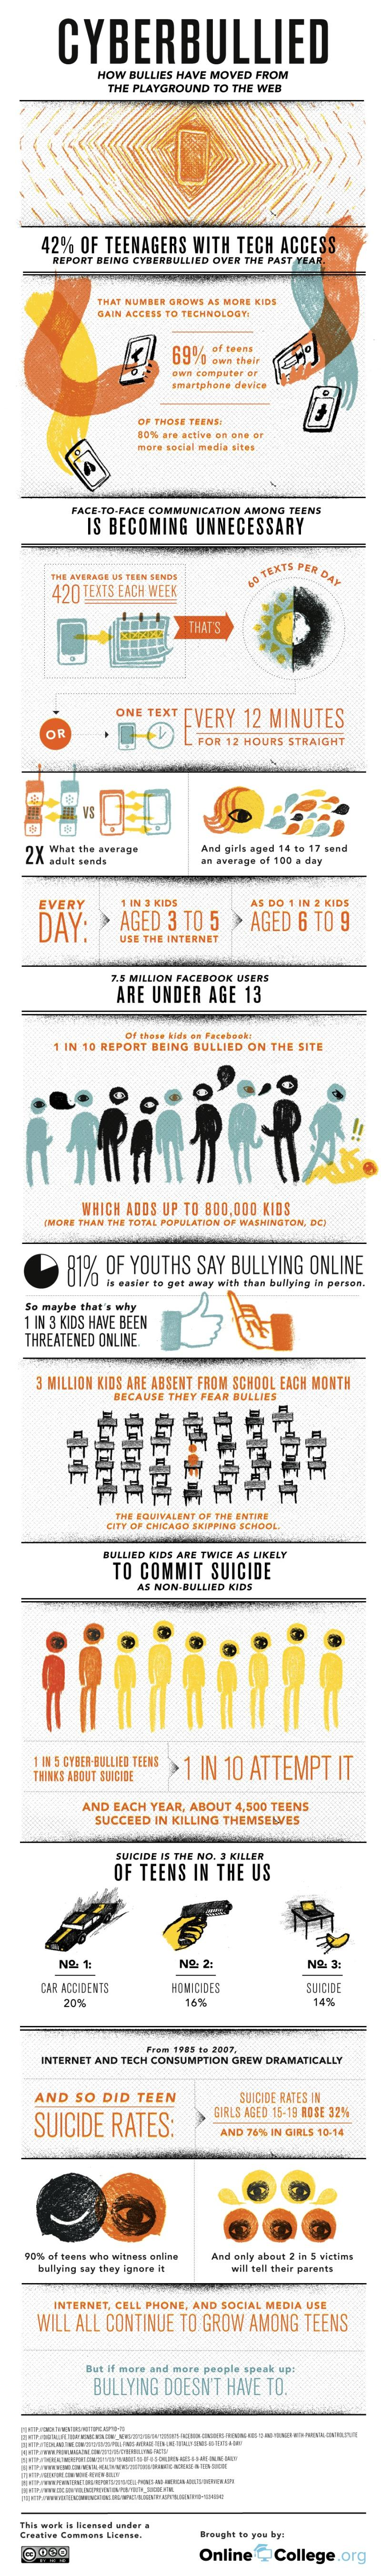 Cyberbullying: Scourge of the Internet [INFOGRAPHIC]